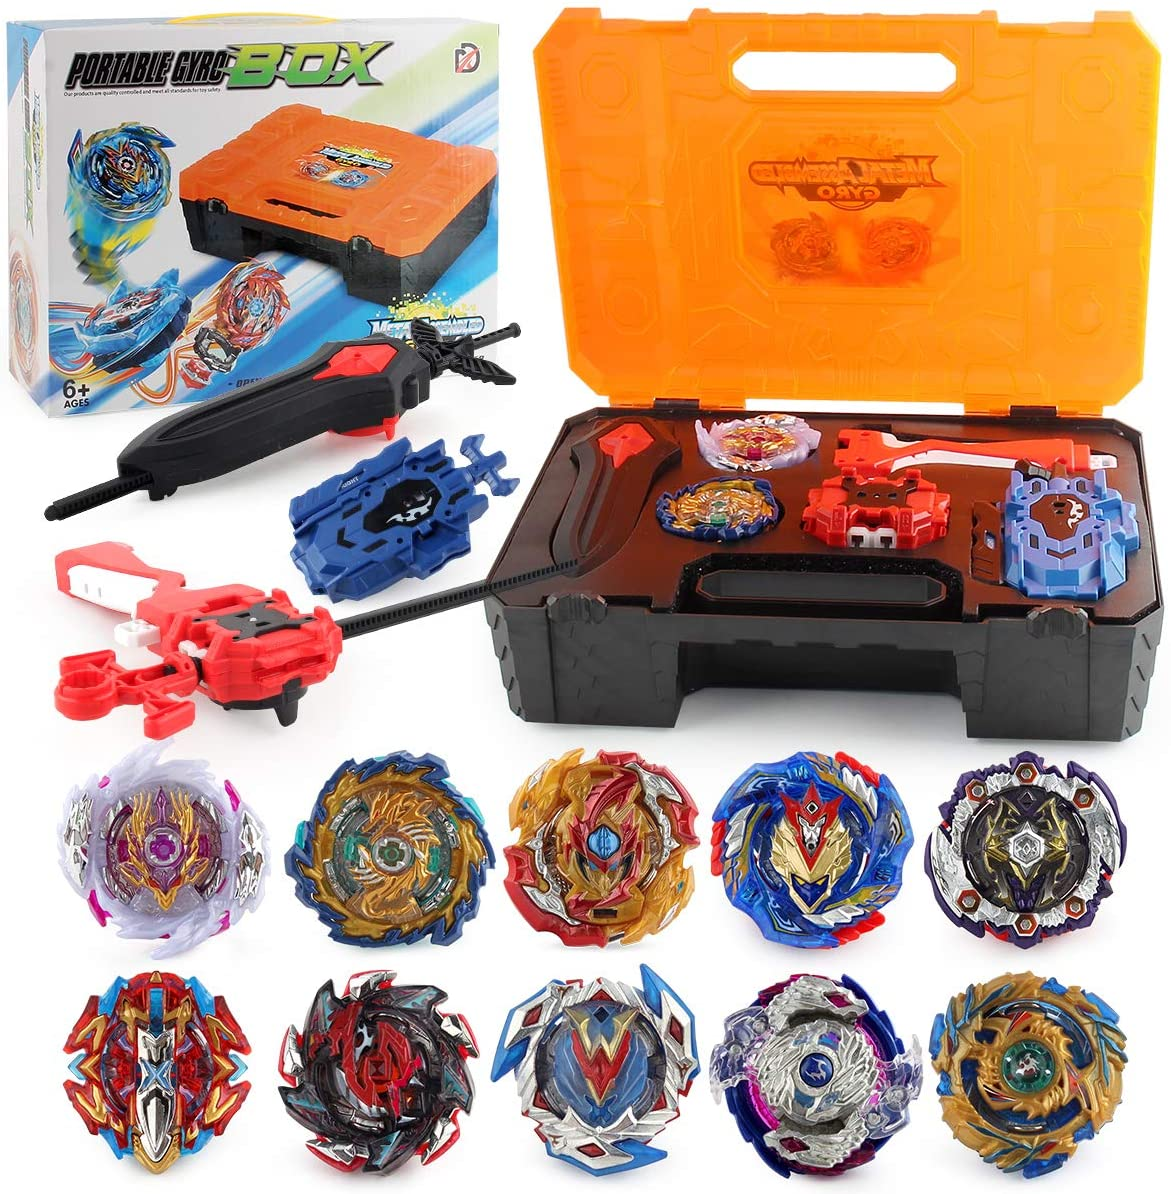 PWTAO Bey Battling Top Burst Launcher Blade Popular brand in the world Set Max 46% OFF Game St Grip Toy